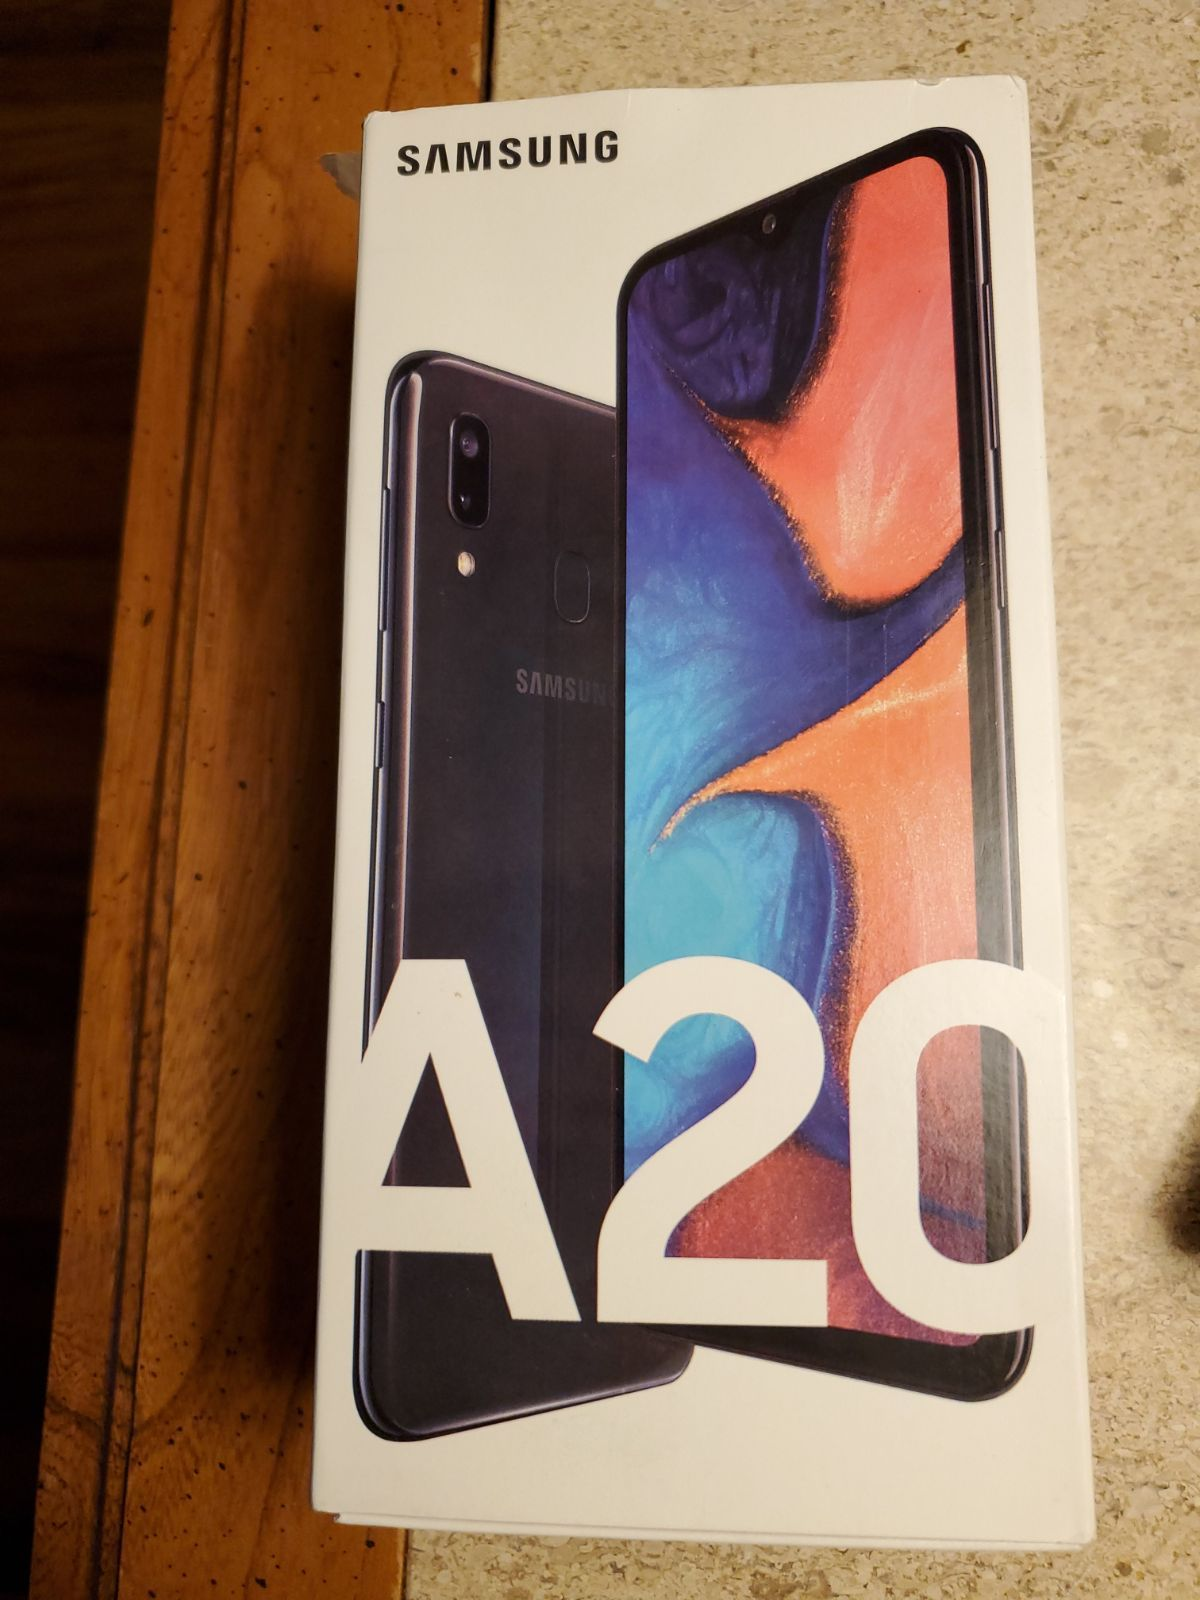 Samsung Galaxy A20 New Open Box Gsm On On Mercari Samsung Galaxy Galaxy Samsung